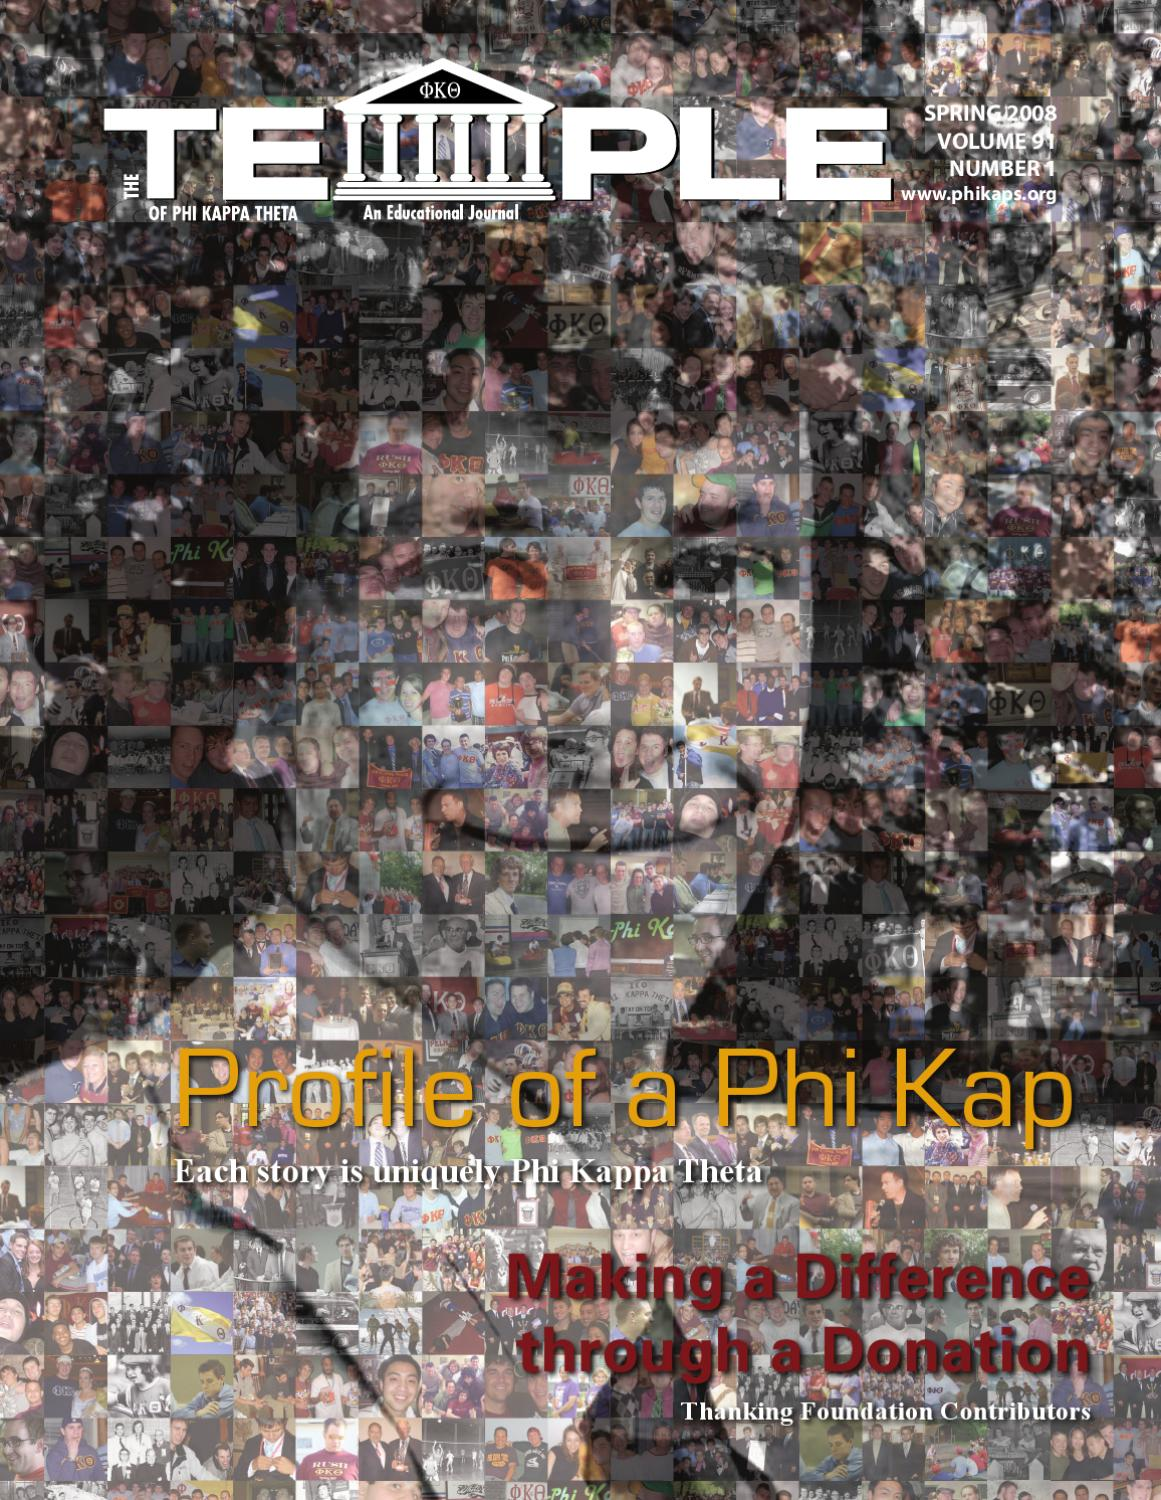 The temple journal of phi kappa theta spring 2008 by phi kappa the temple journal of phi kappa theta spring 2008 by phi kappa theta fraternity issuu biocorpaavc Gallery